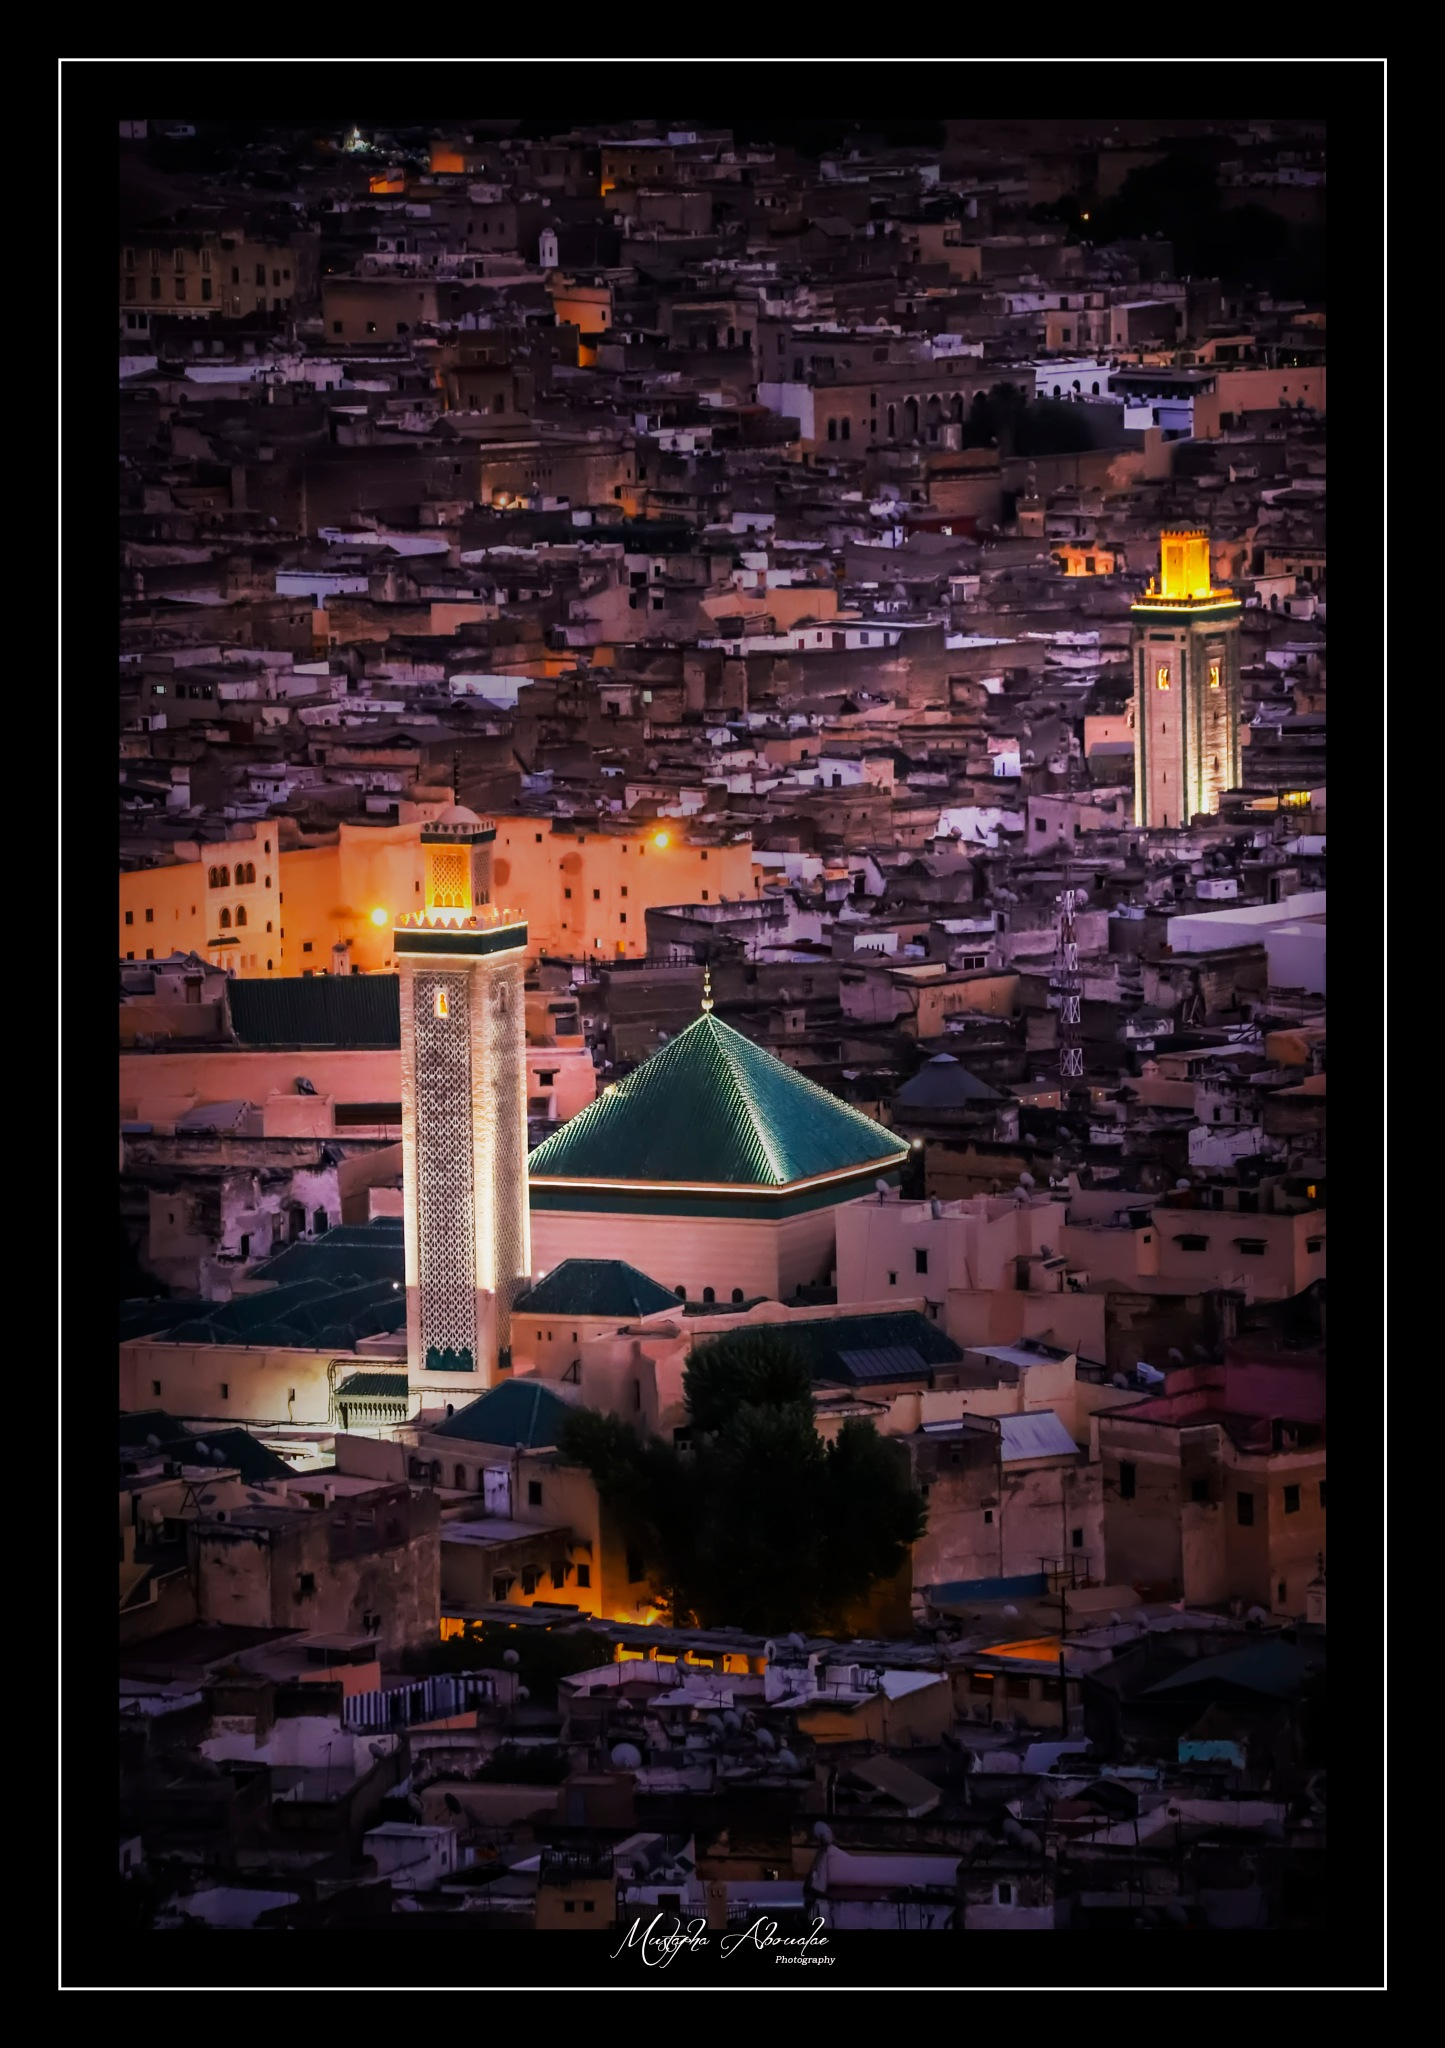 The old city of Fès. Morocco by Aboualae Mustapha